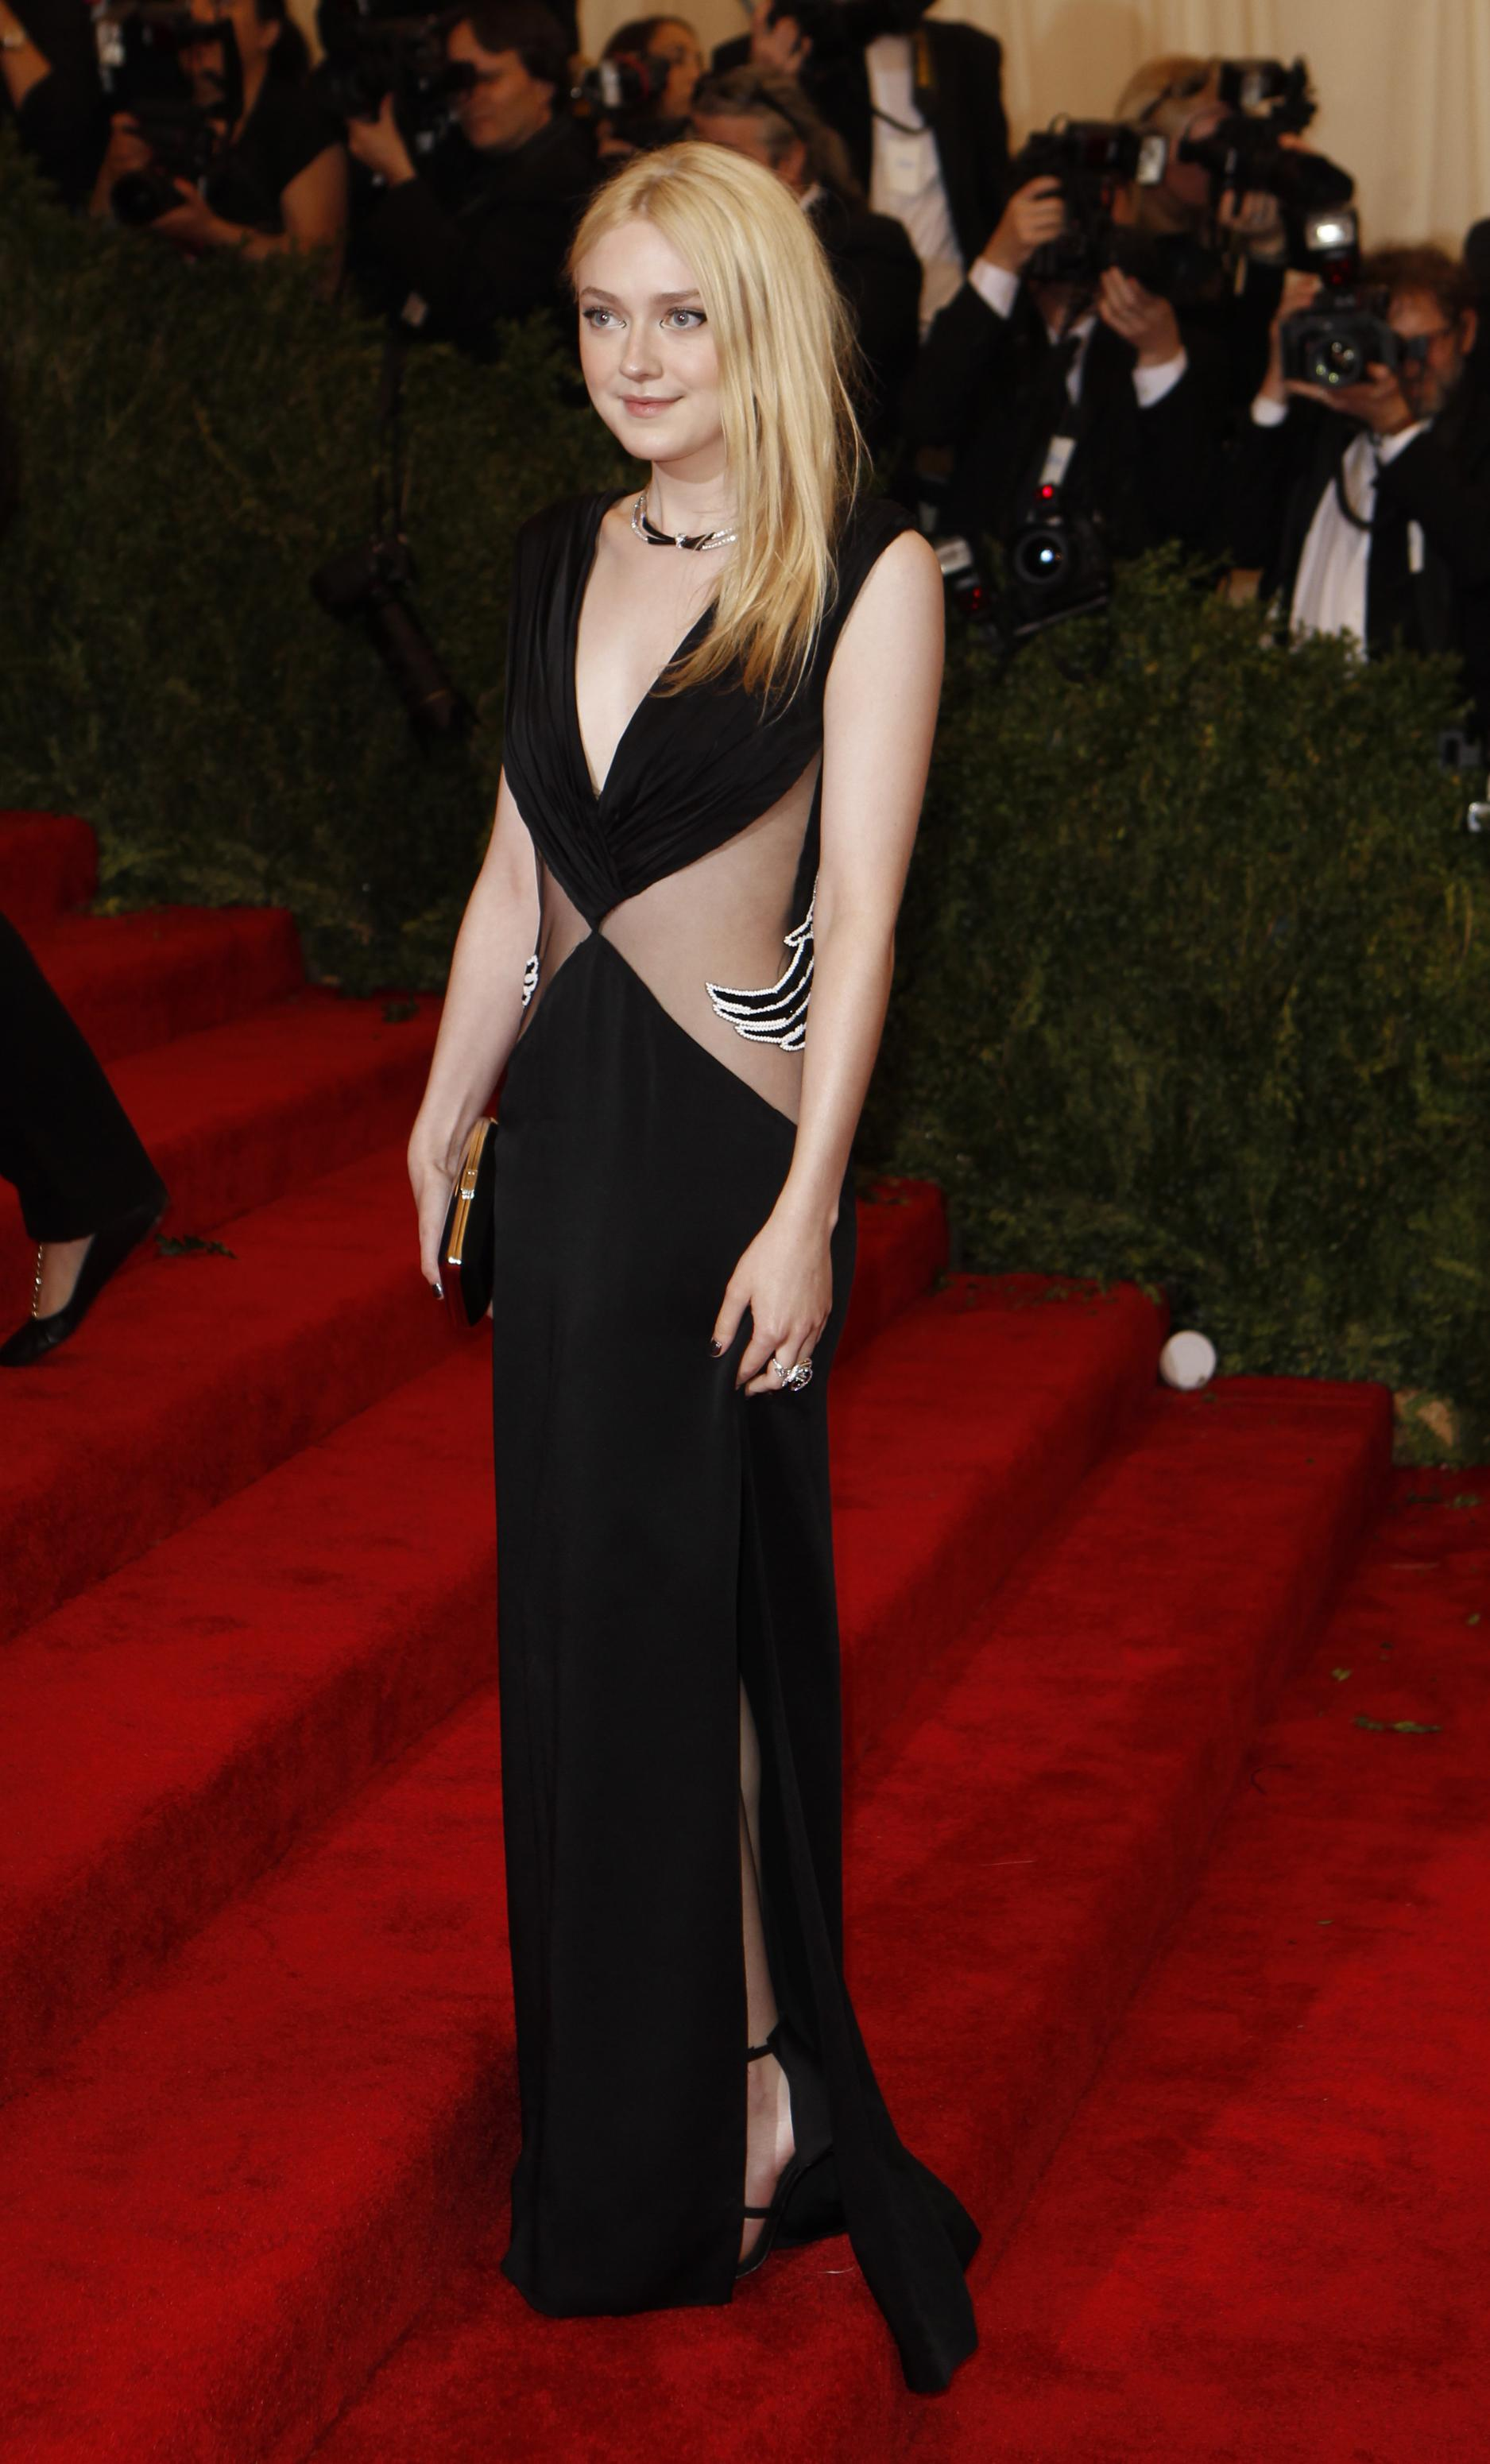 Dakota Fanning at the 2013 Met Gala